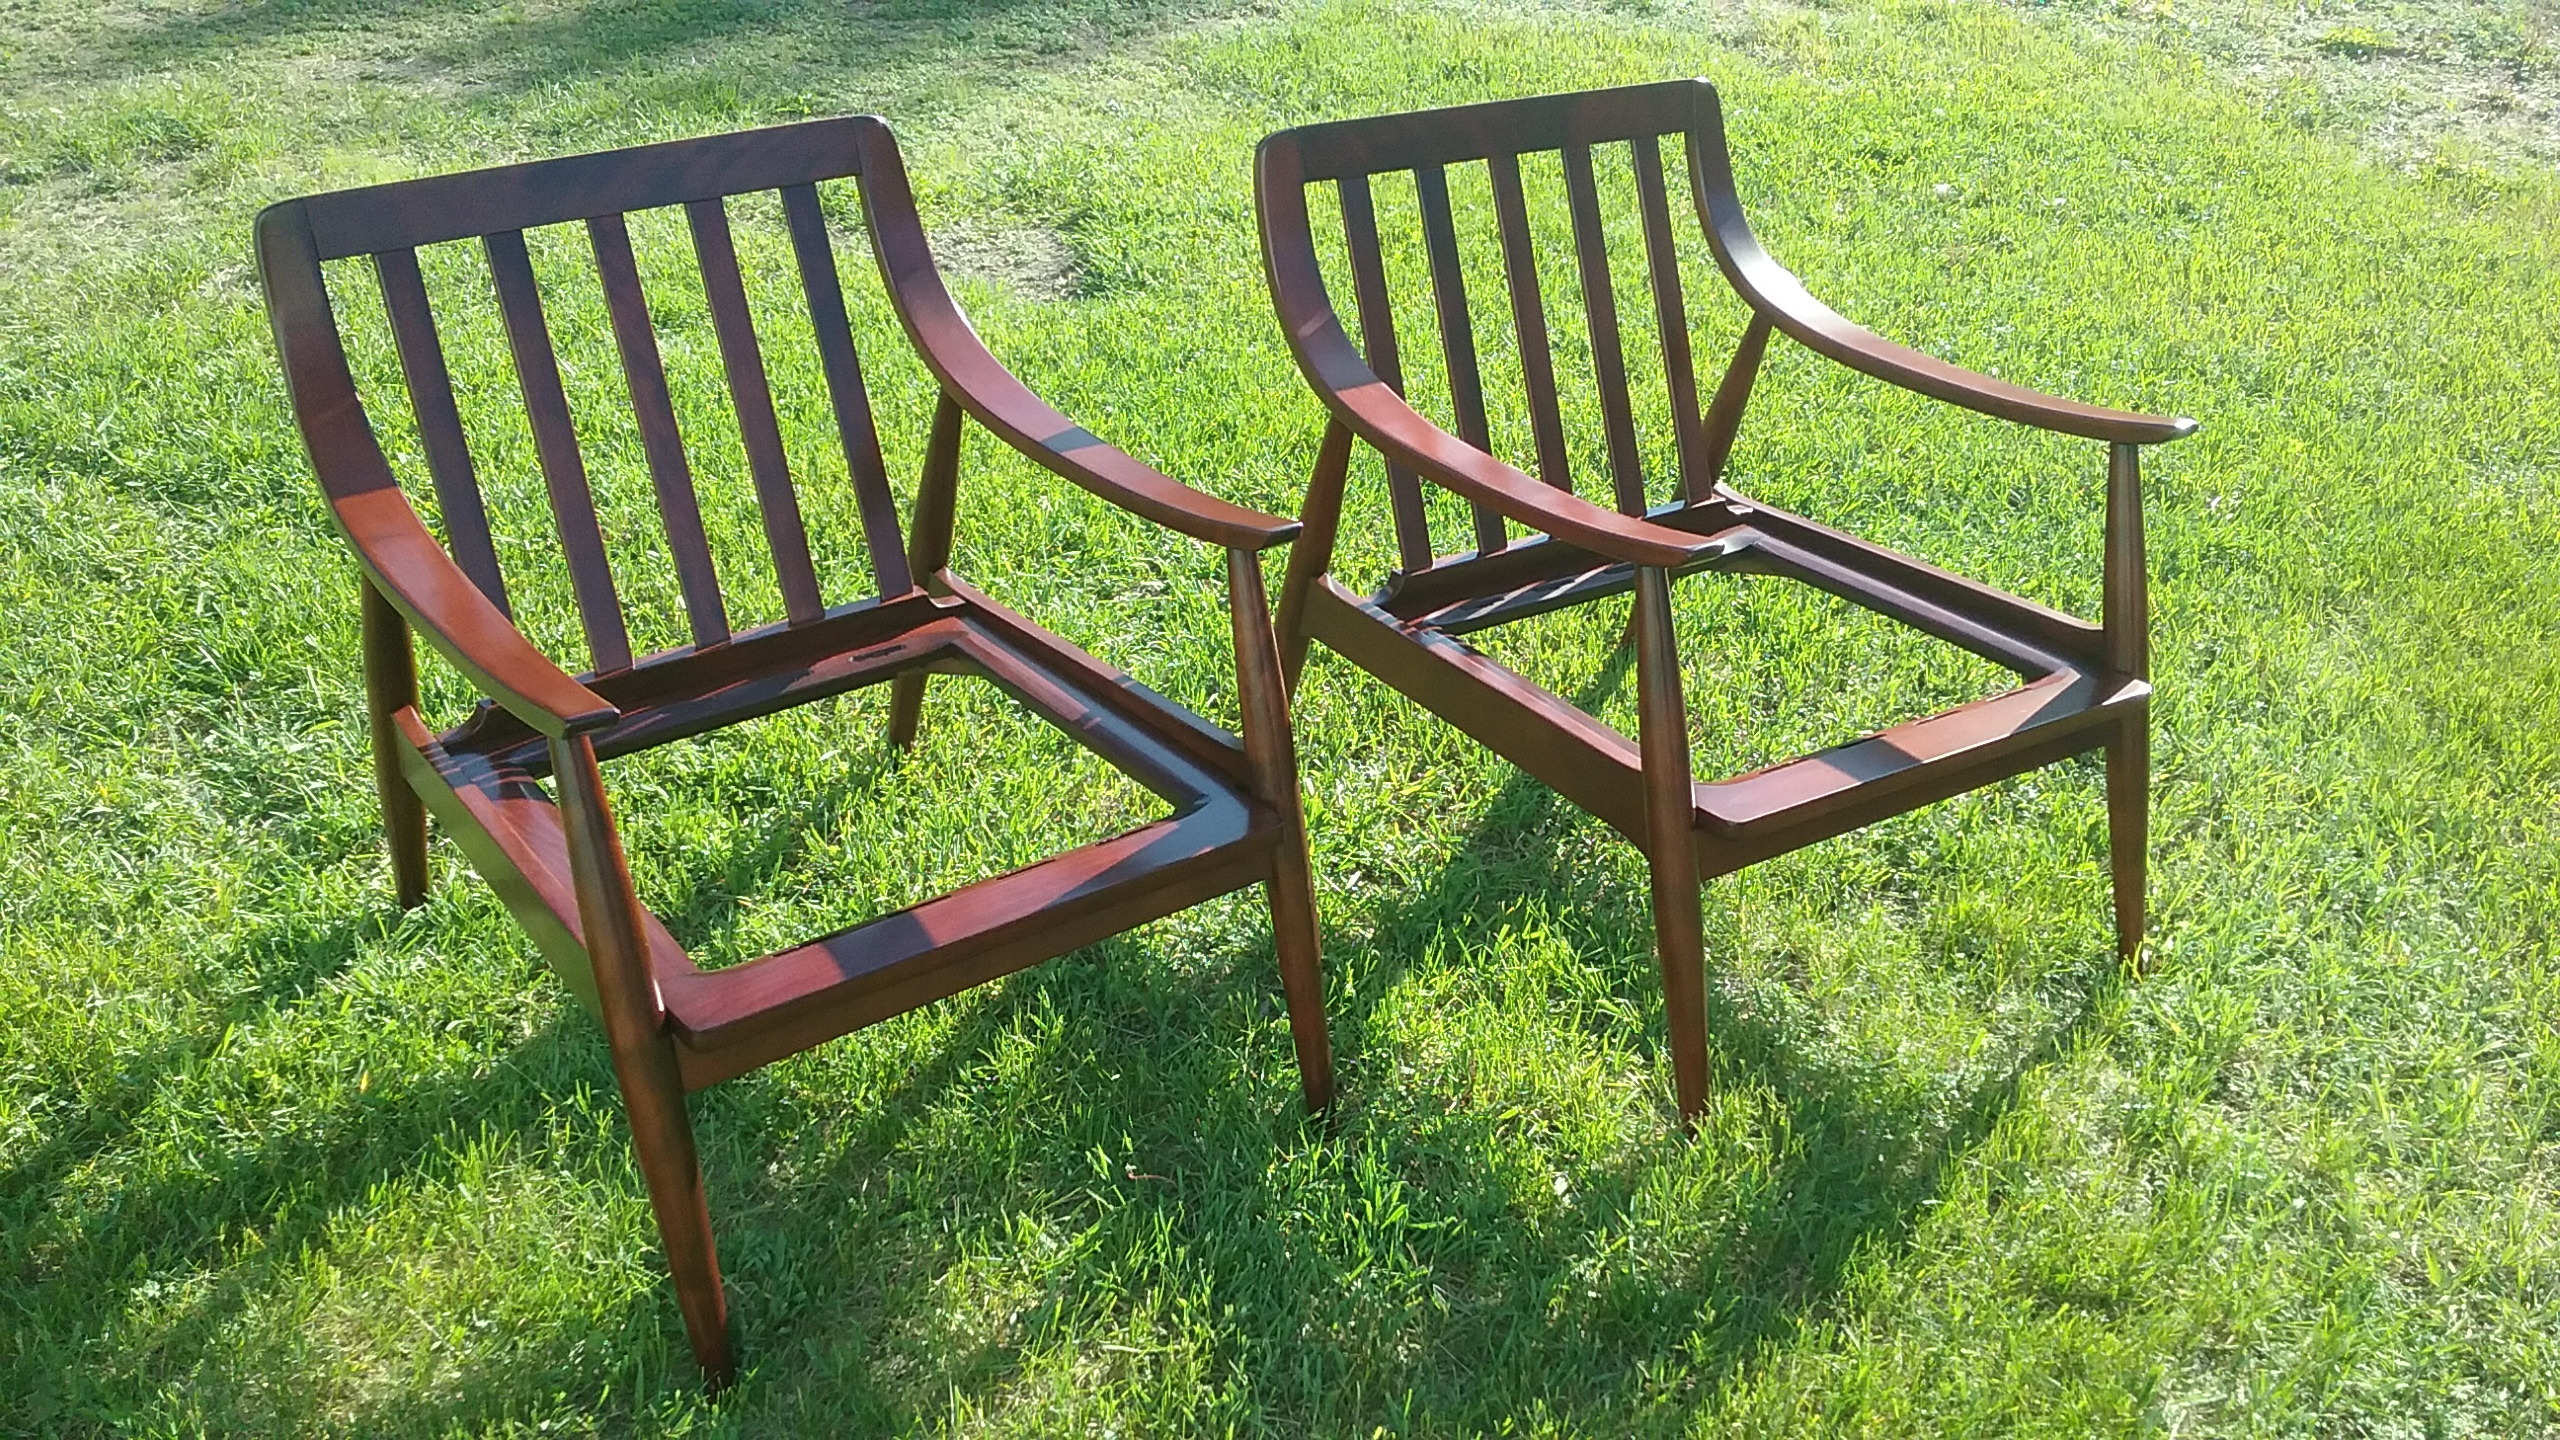 Lounge chairs refinished by Erik Warner, May 2017.